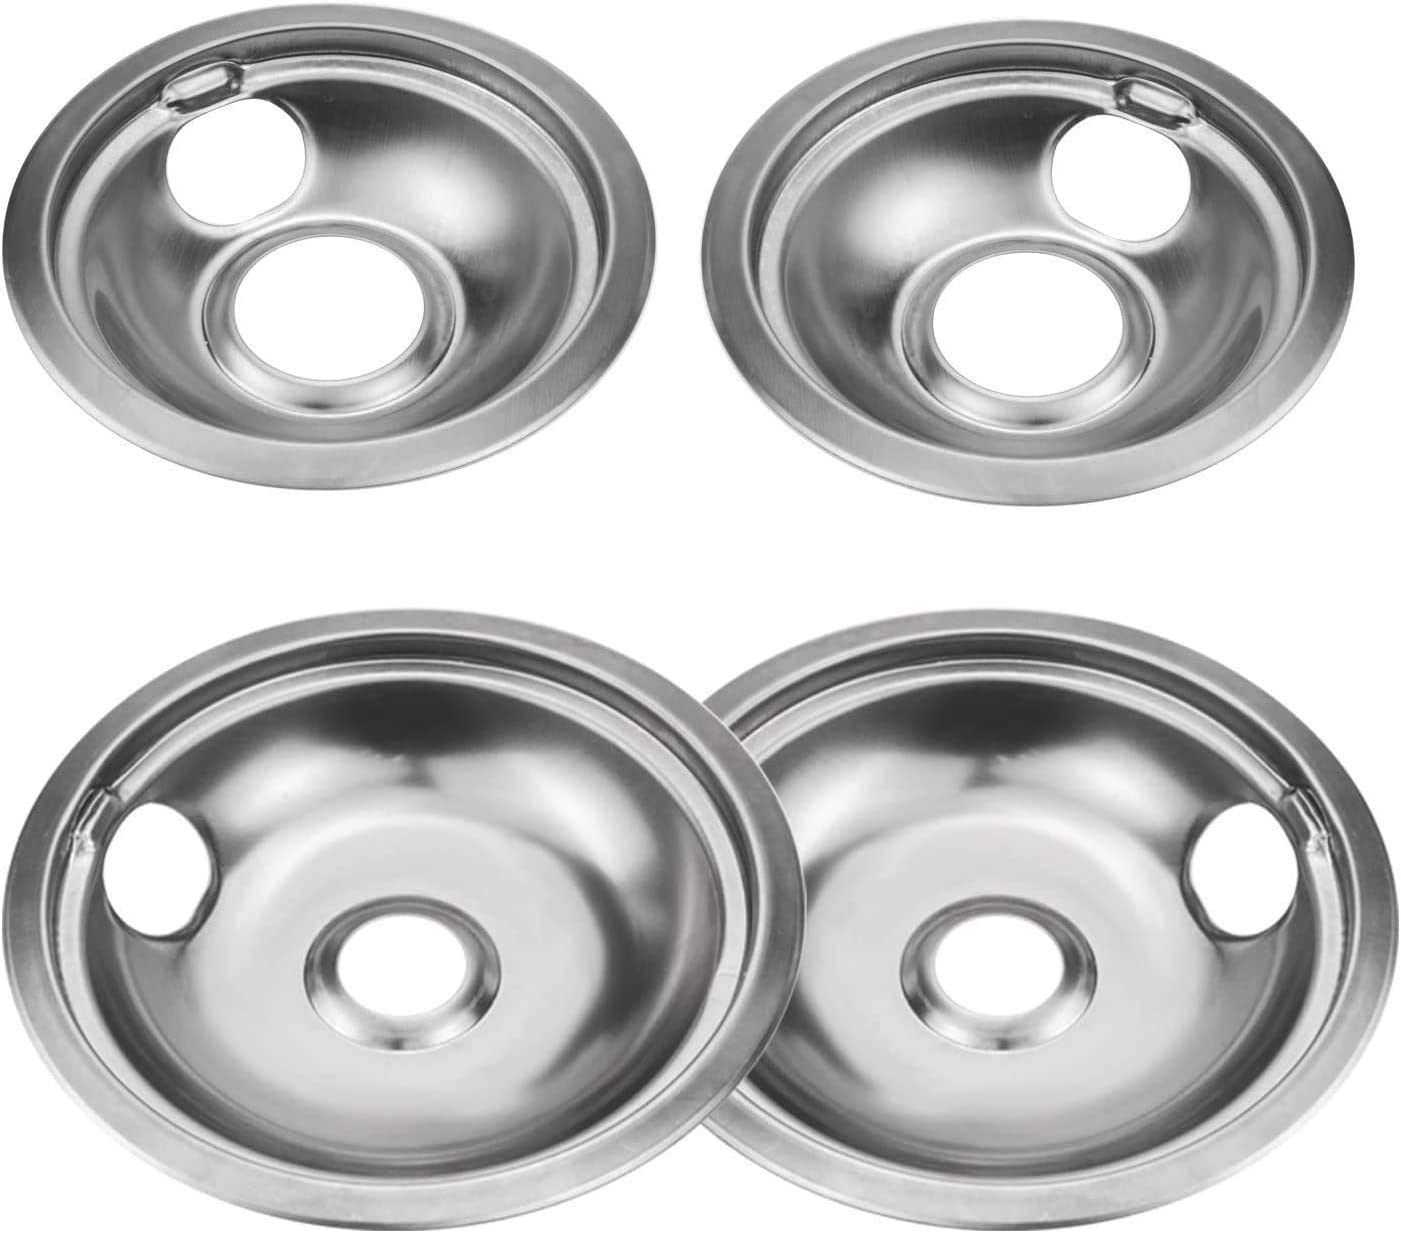 KOHUIPU Stainless Burner Drip Pans Cover Kitchen Porcelain Drip contains (2) 6